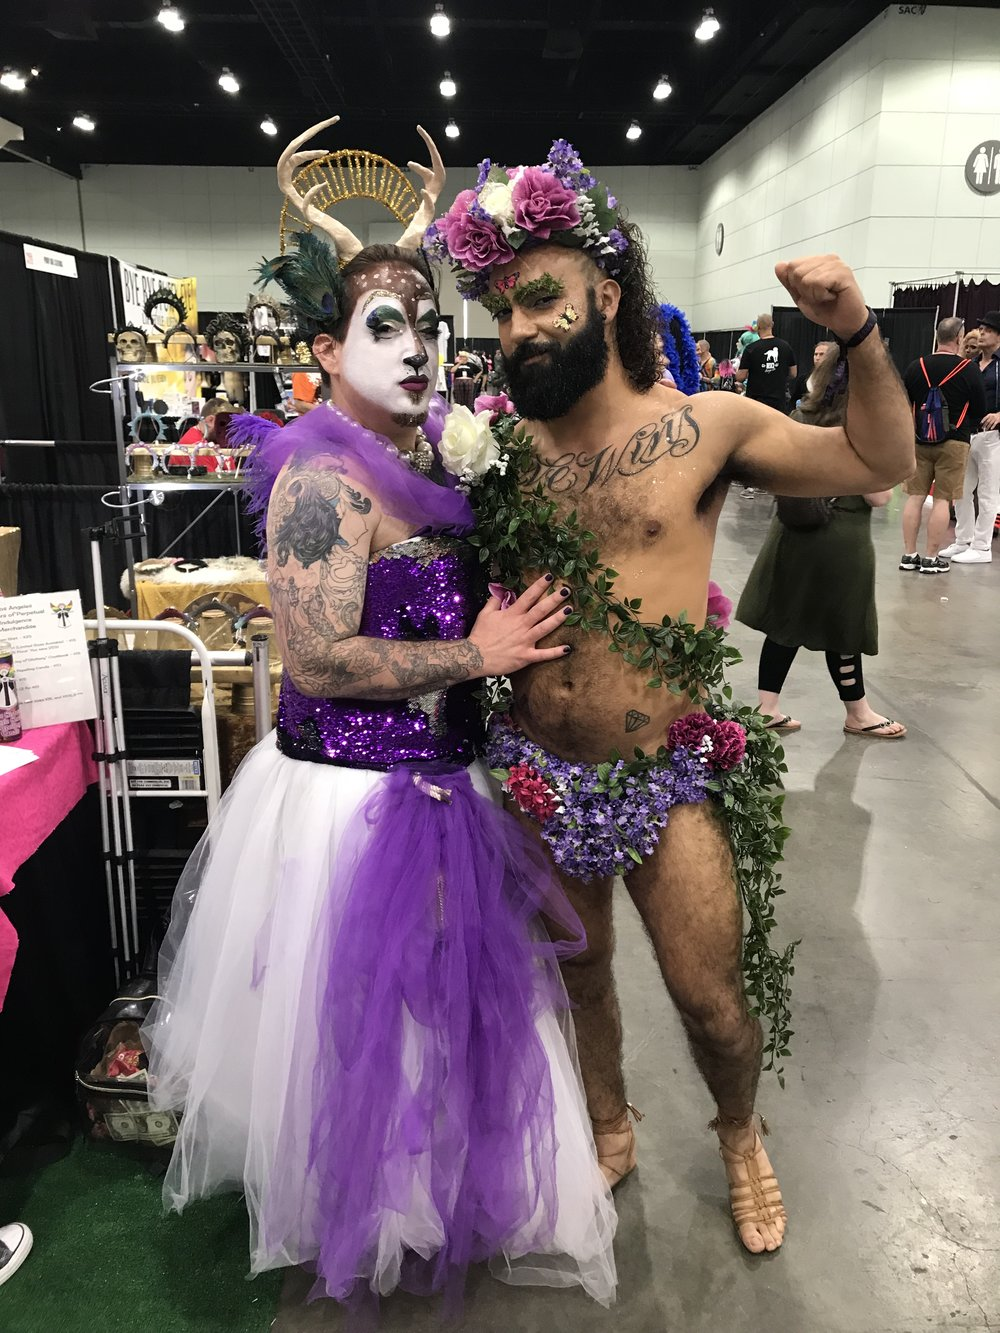 DragCon, Saturday May 12th 2018